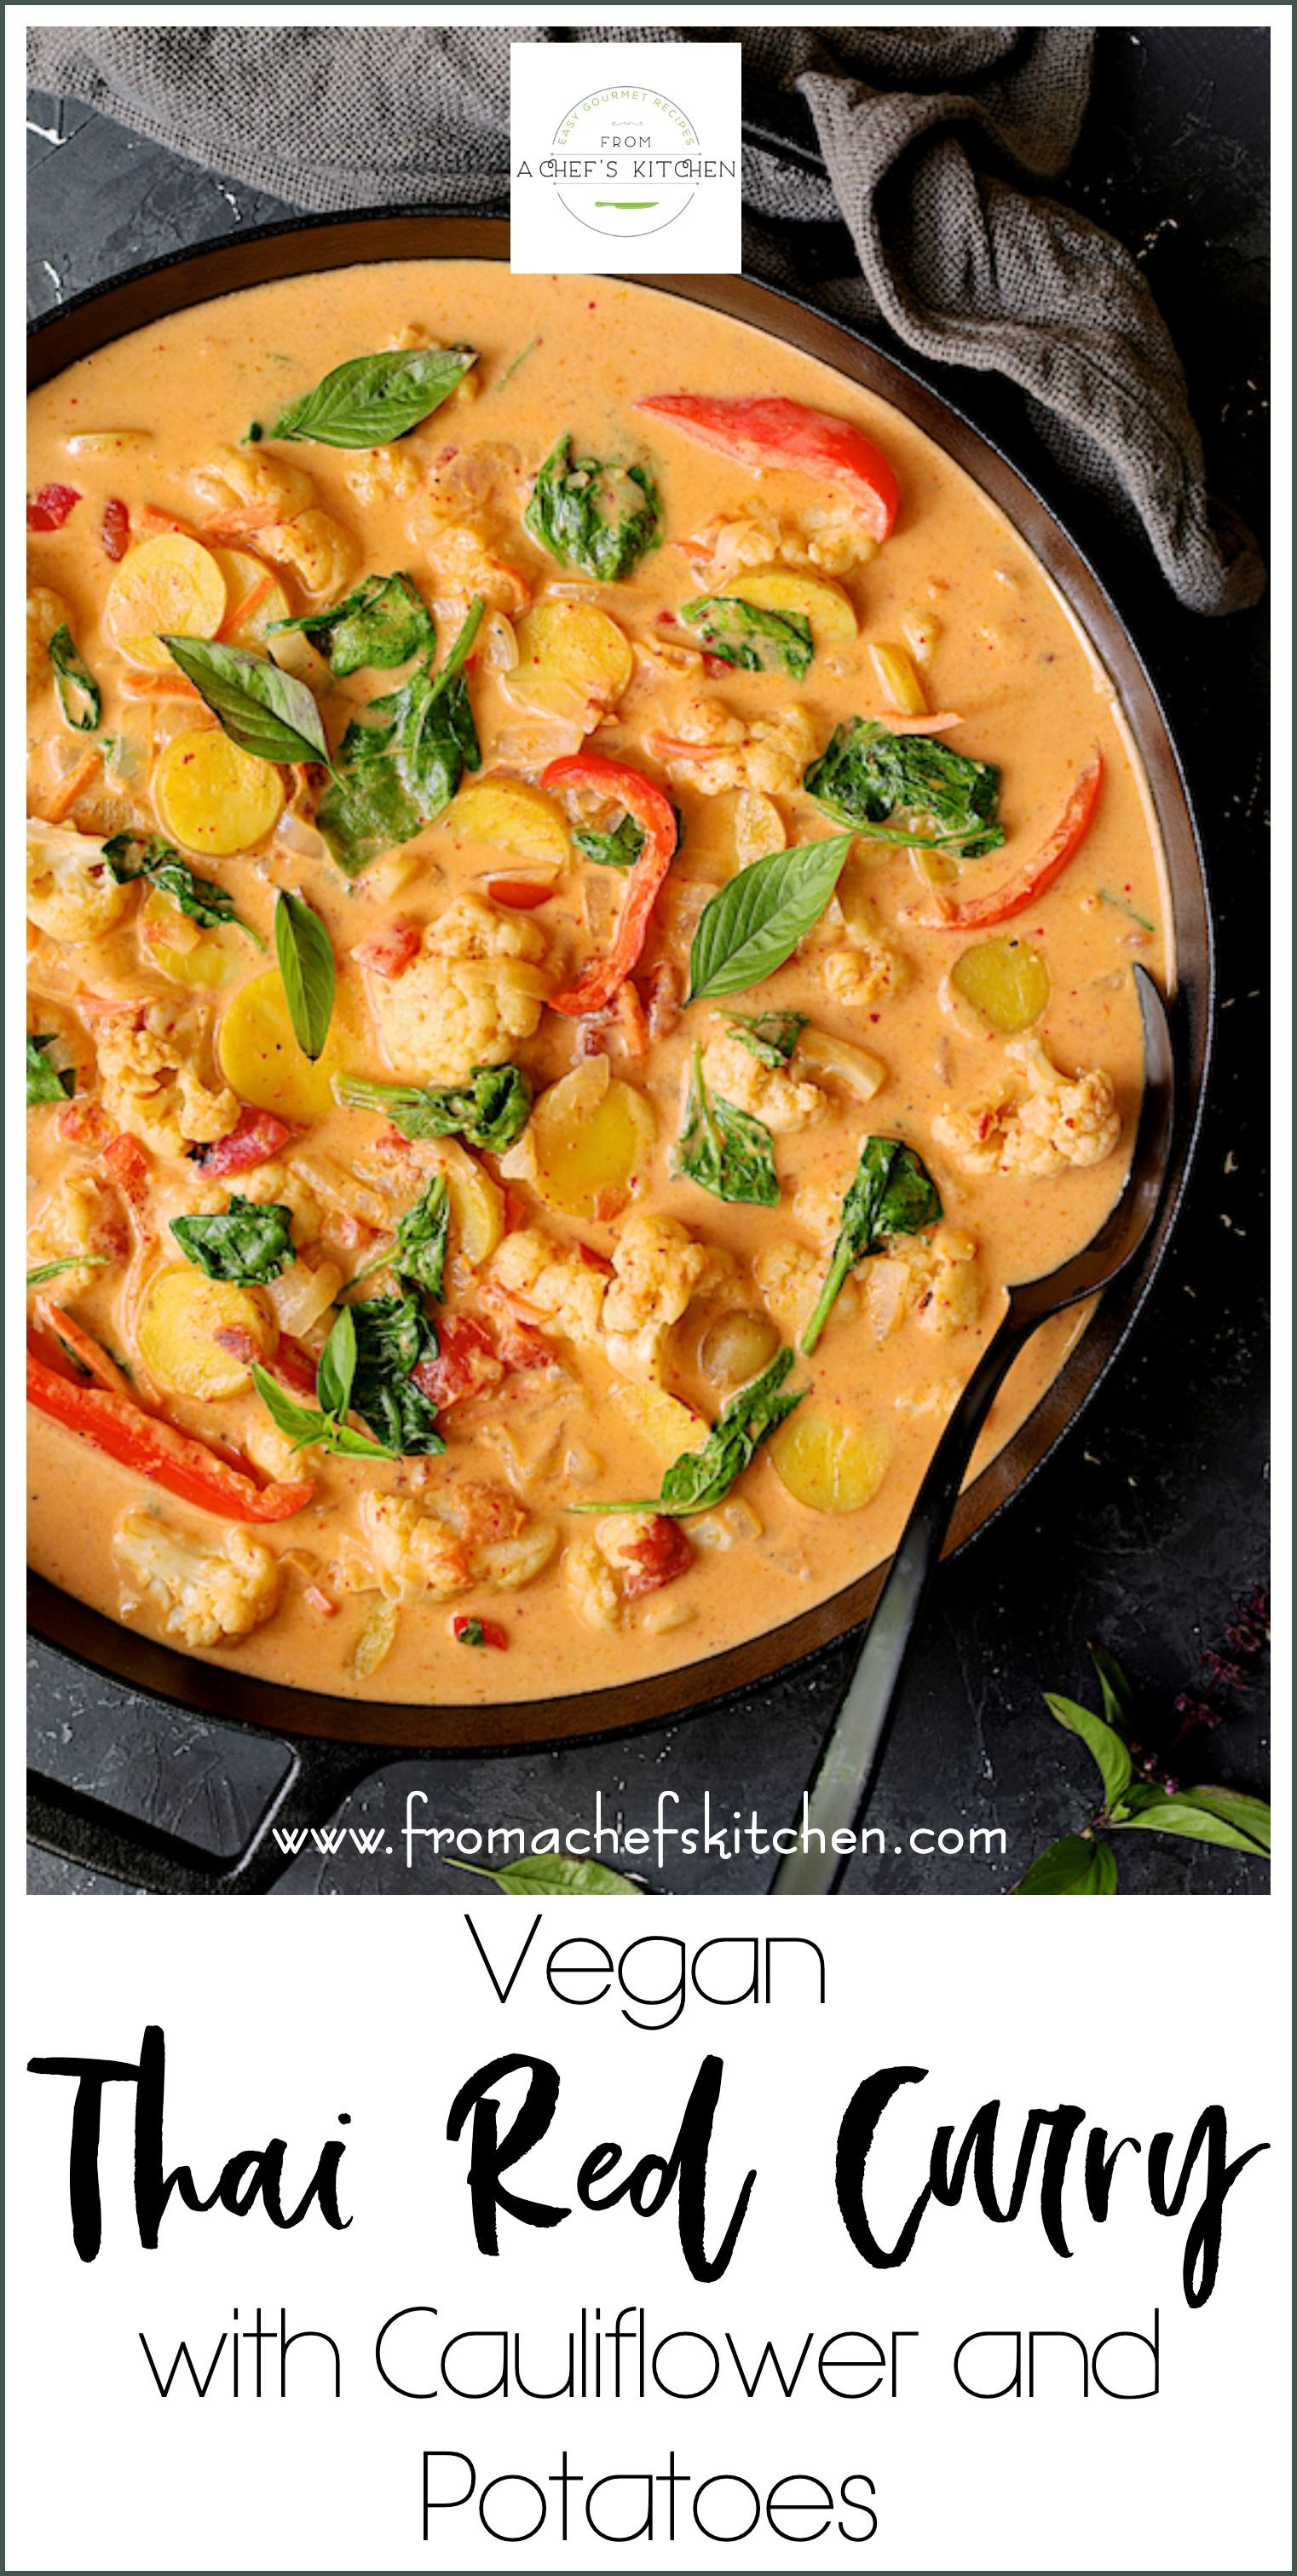 Vegan Thai Red Curry with Cauliflower and Potatoes